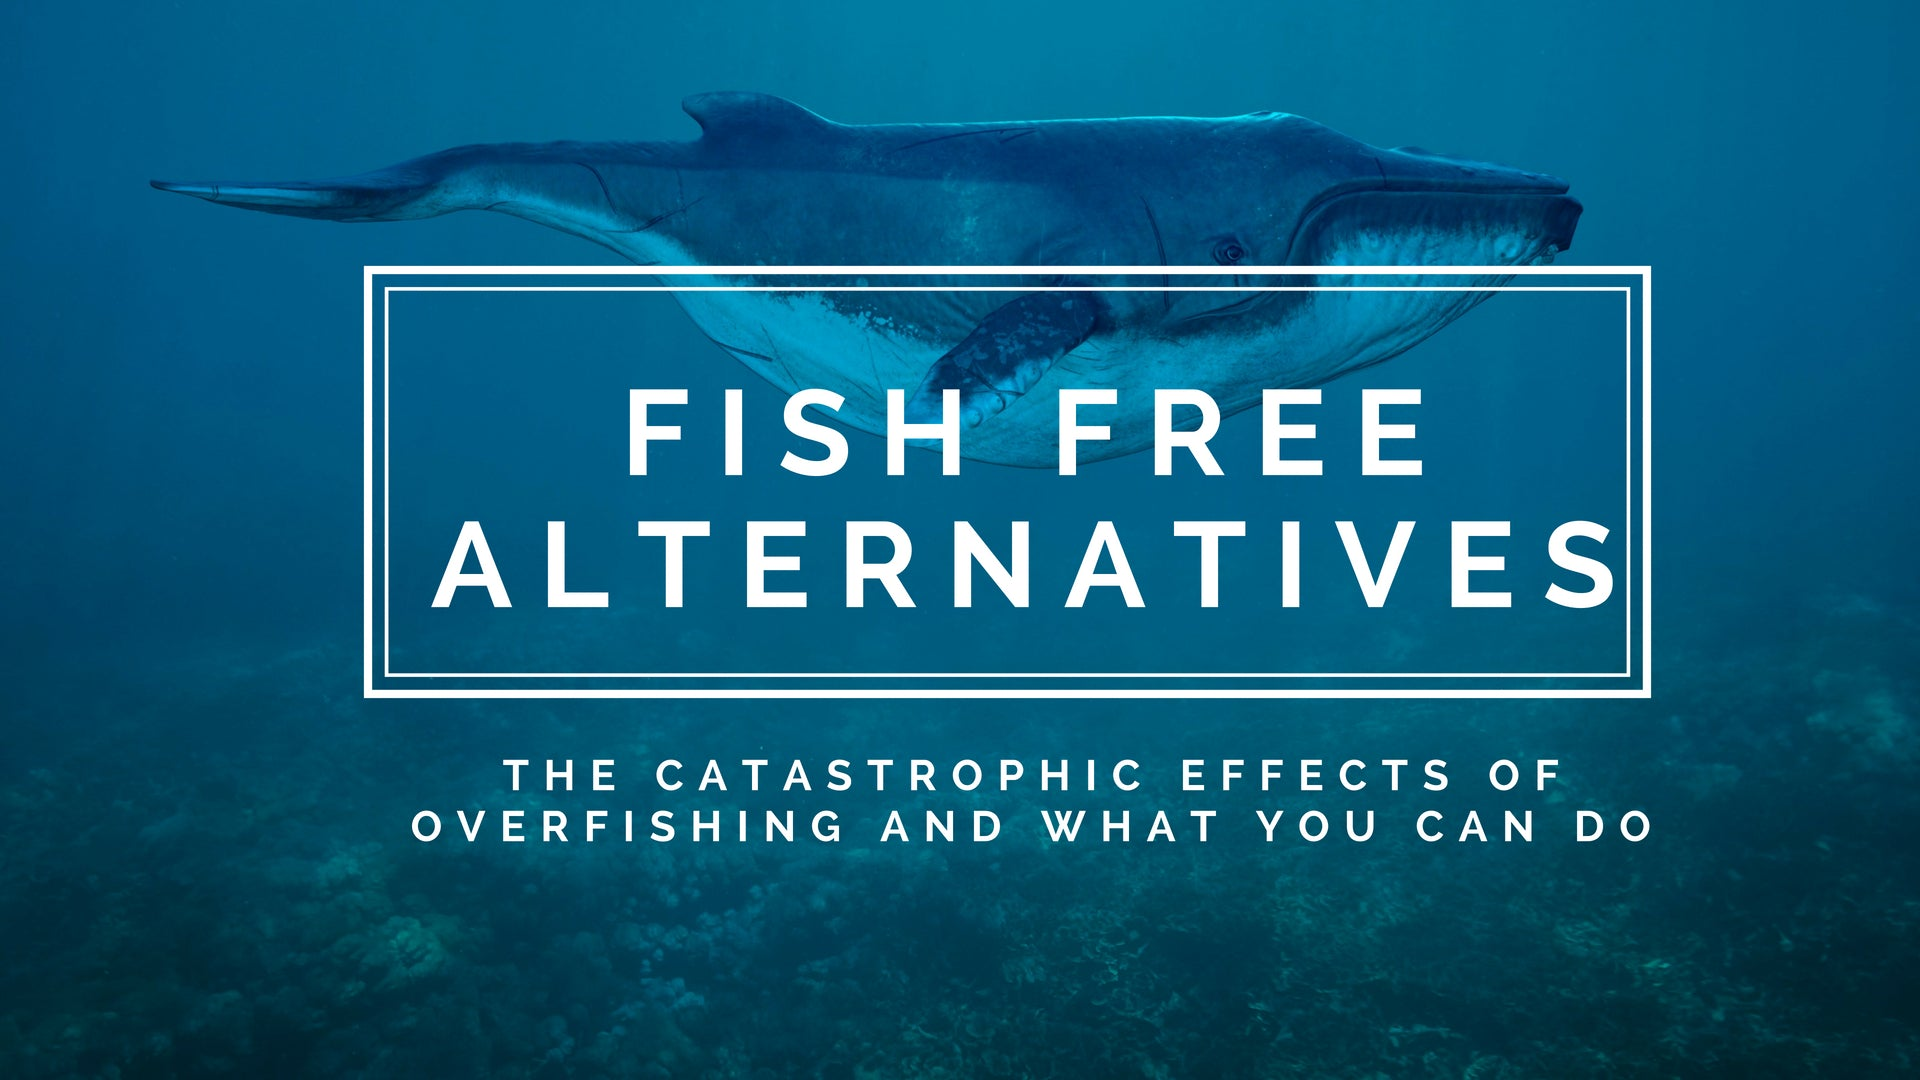 FISH FREE ALTERNATIVES - The catastrophic effects of overfishing and what you can do